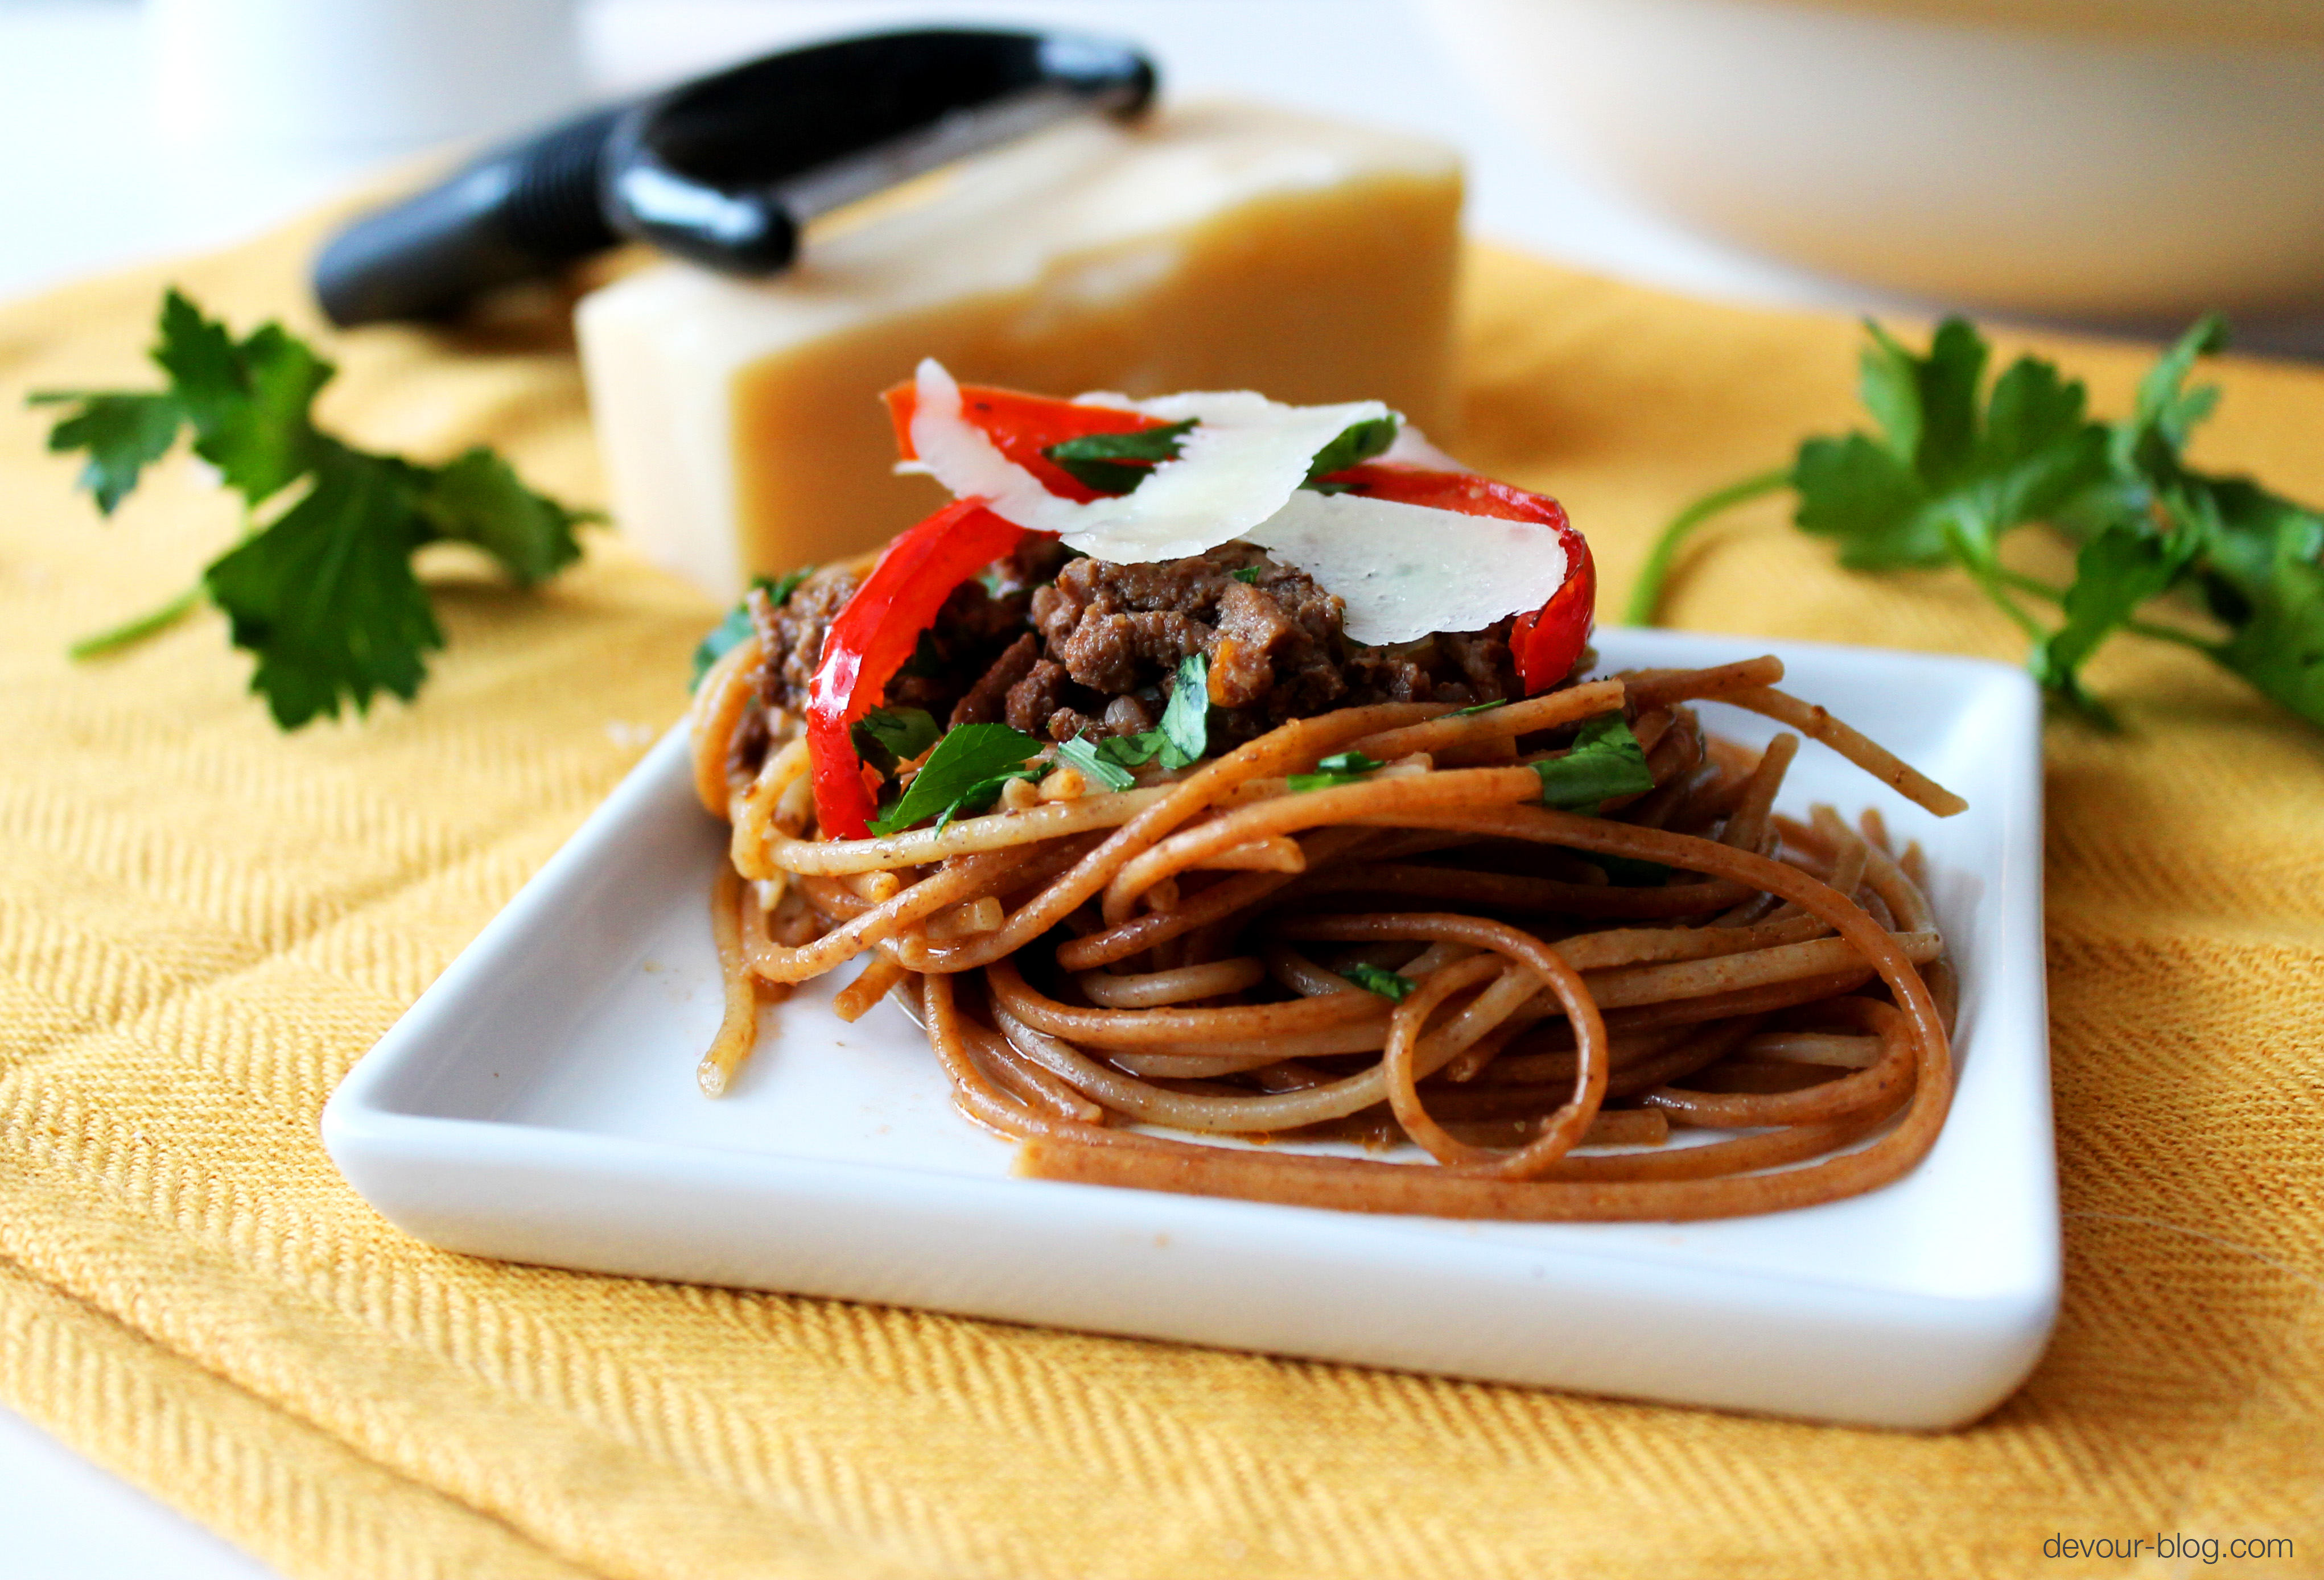 Spaghetti Bolognese with Roasted Red Peppers